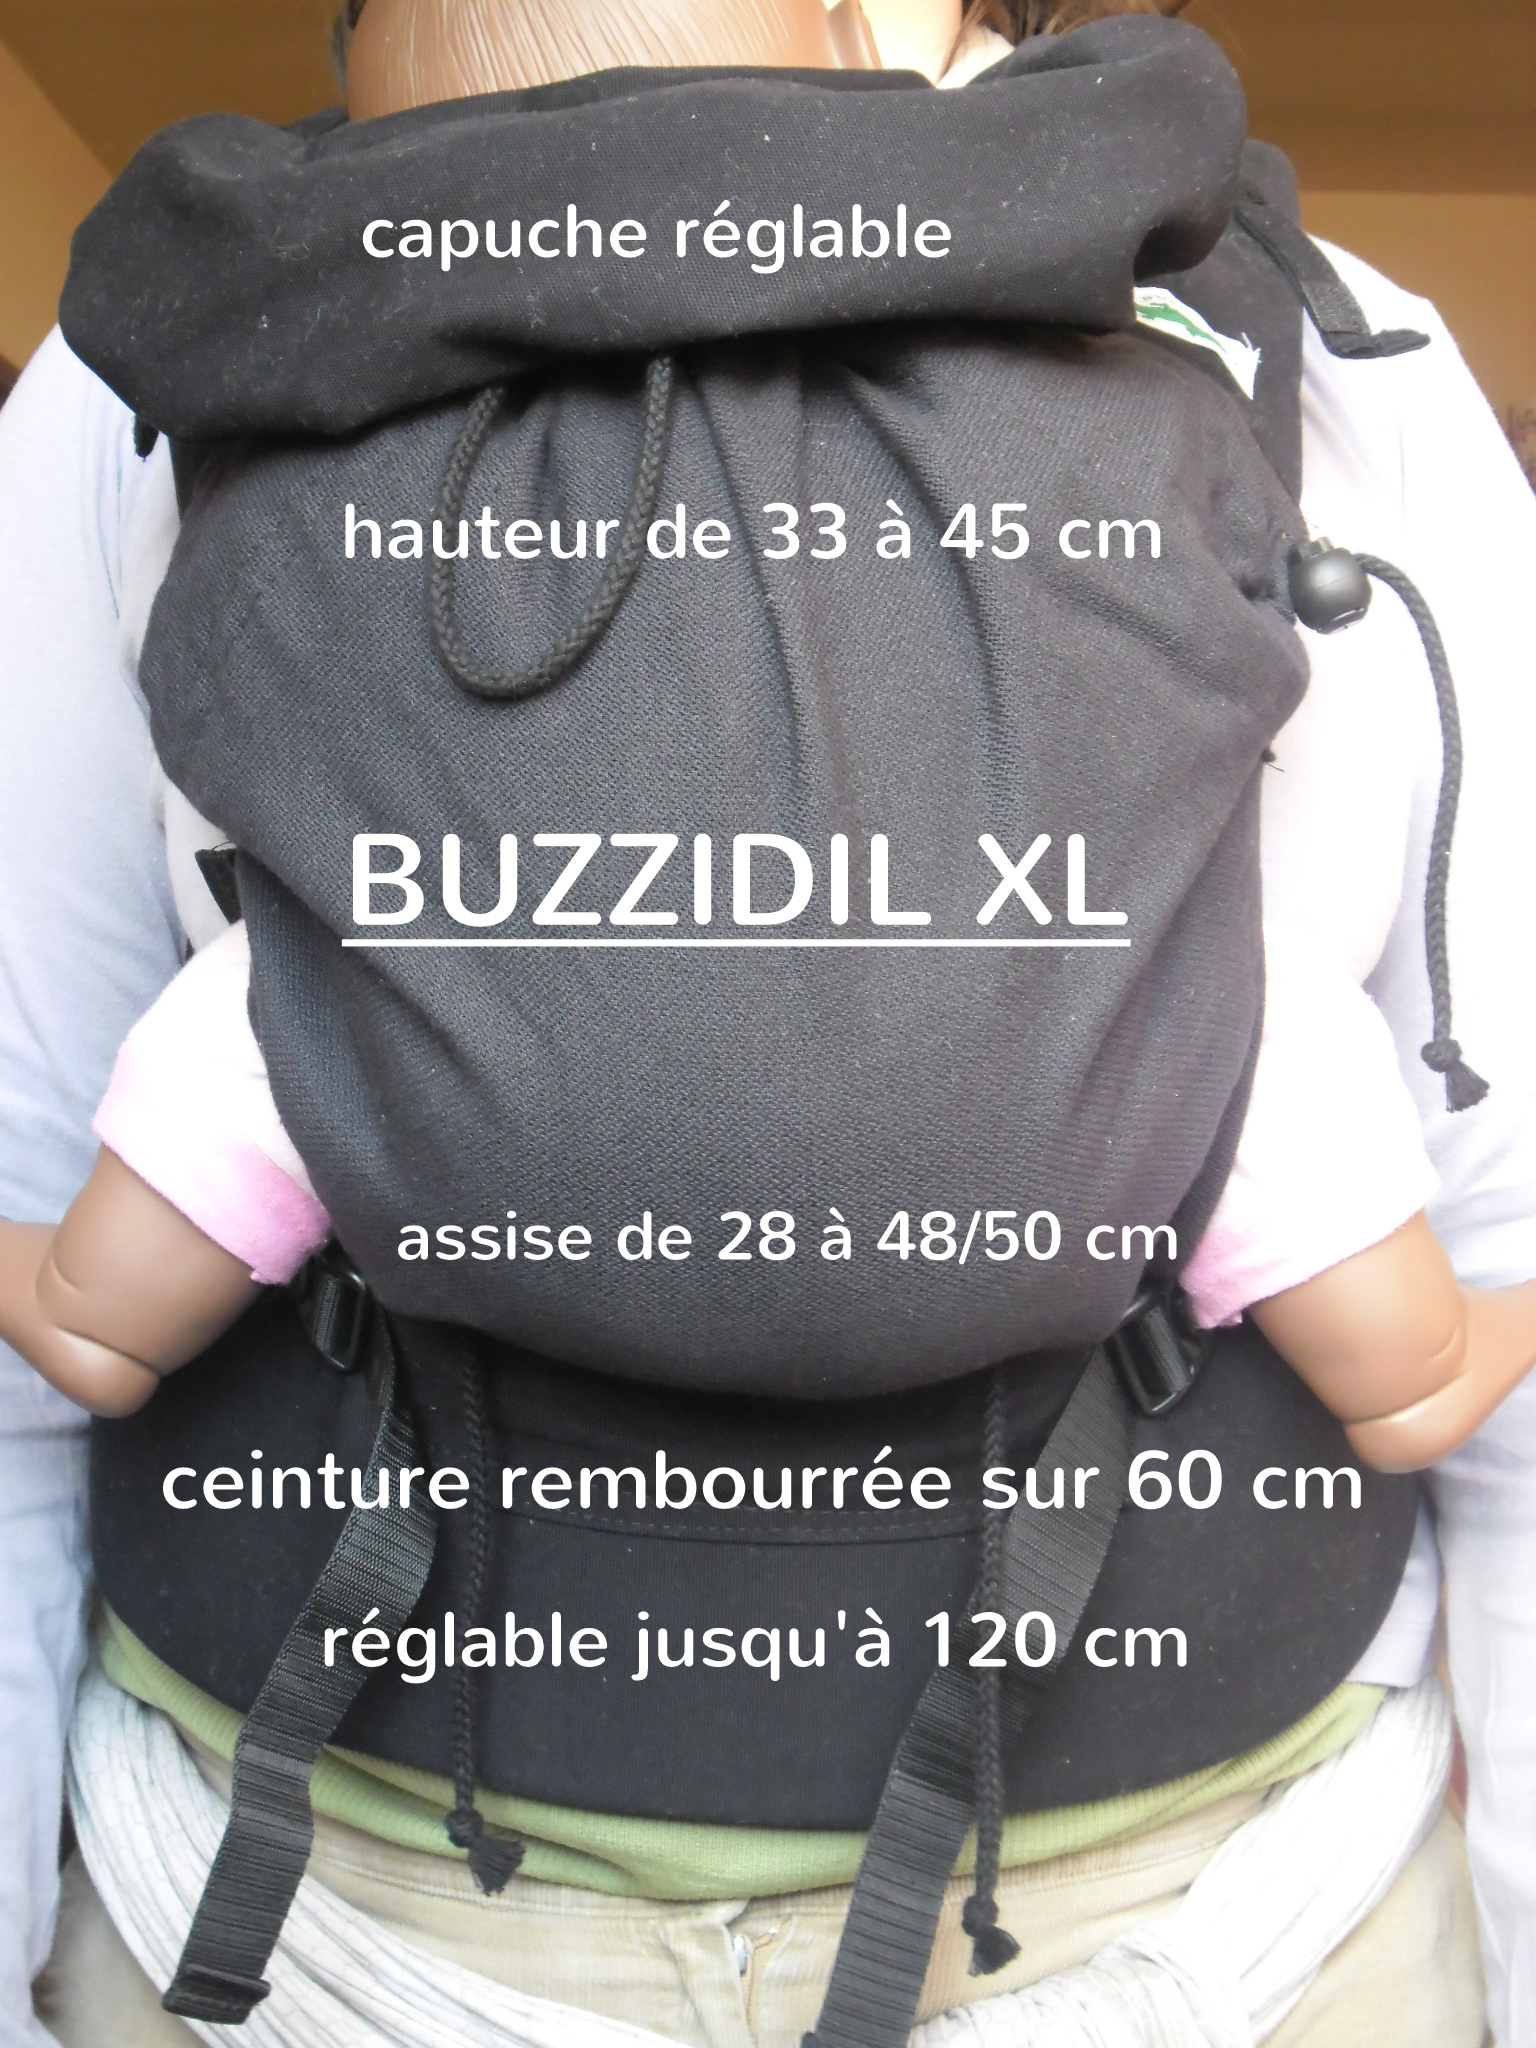 dimensions tablier Buzzidil XL